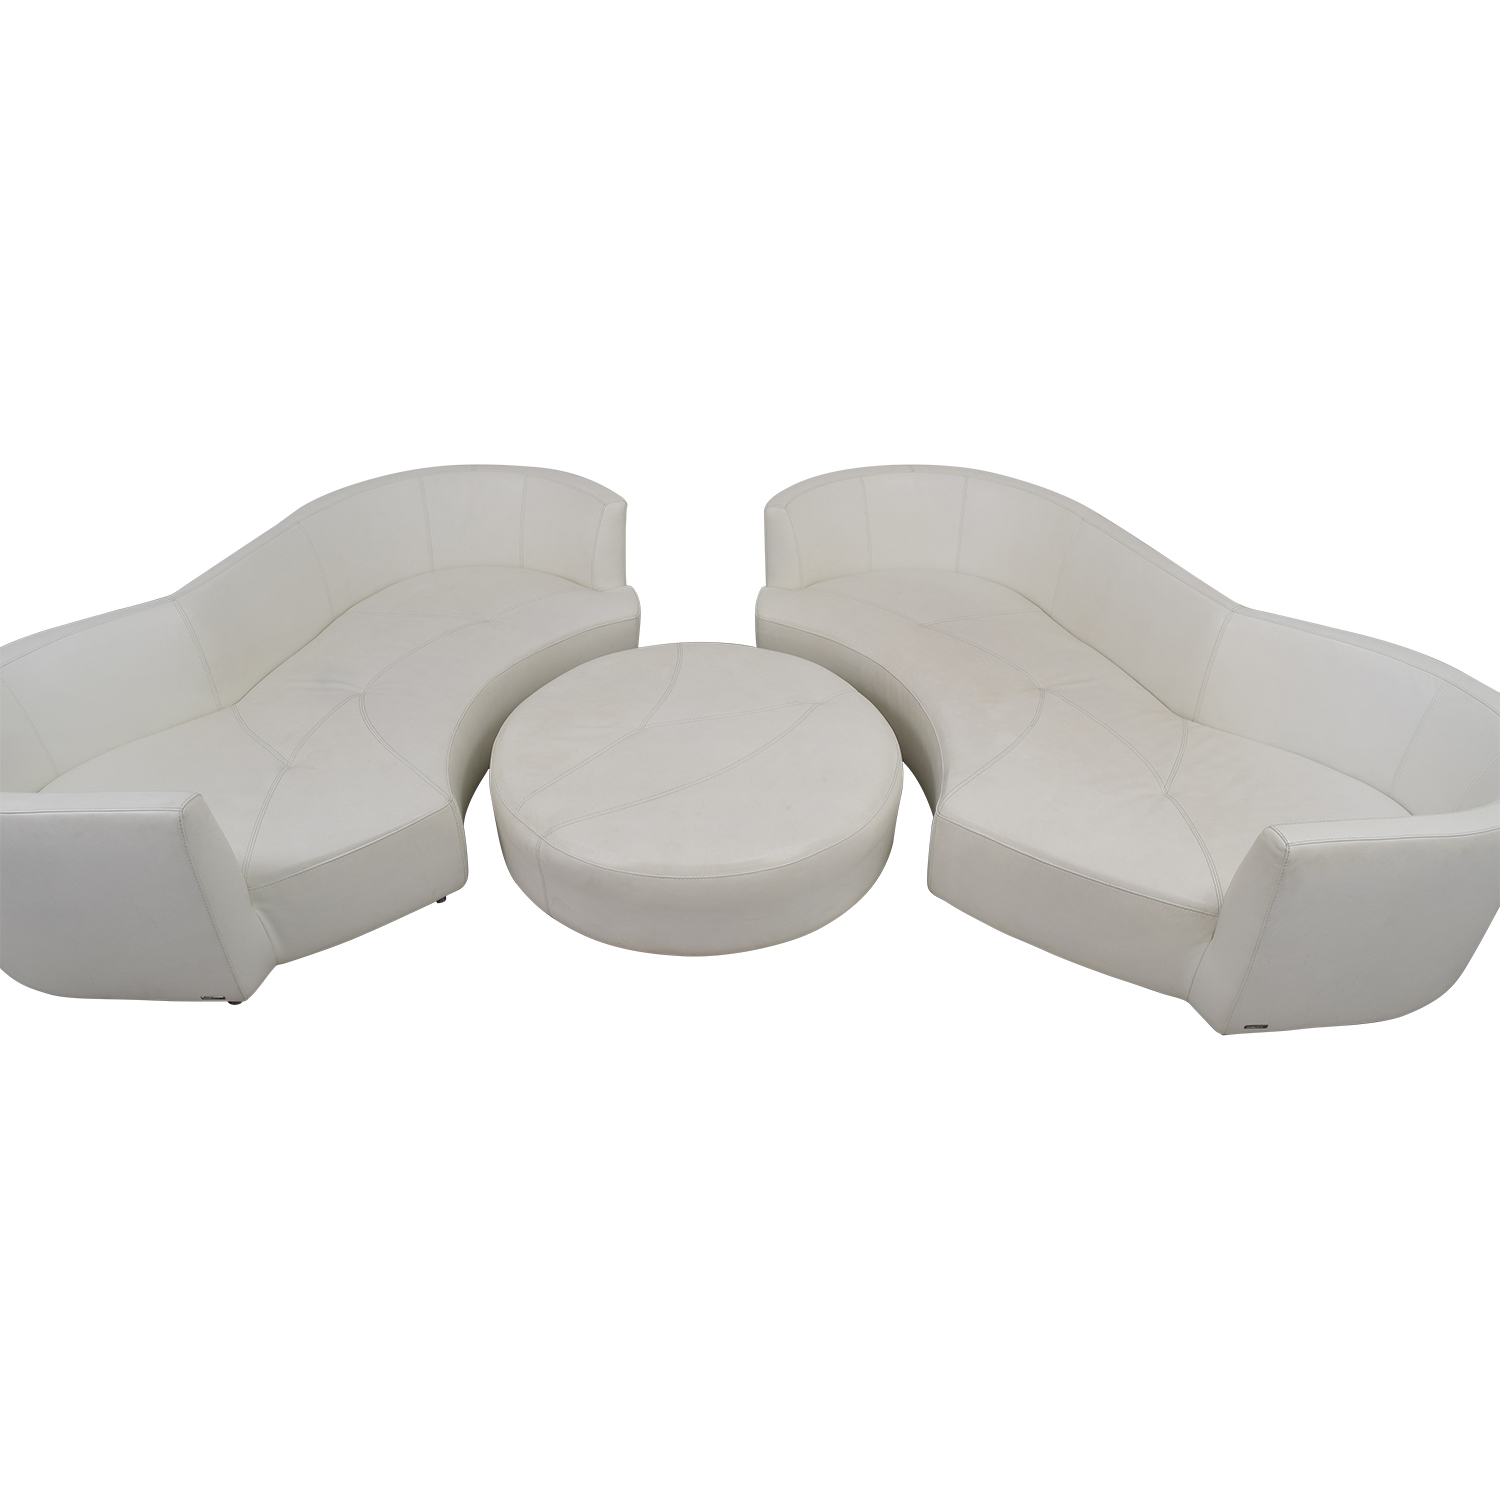 Roche Bobois Roche Bobois White Digital Curved Three-Cushion Sofas with Ottoman second hand